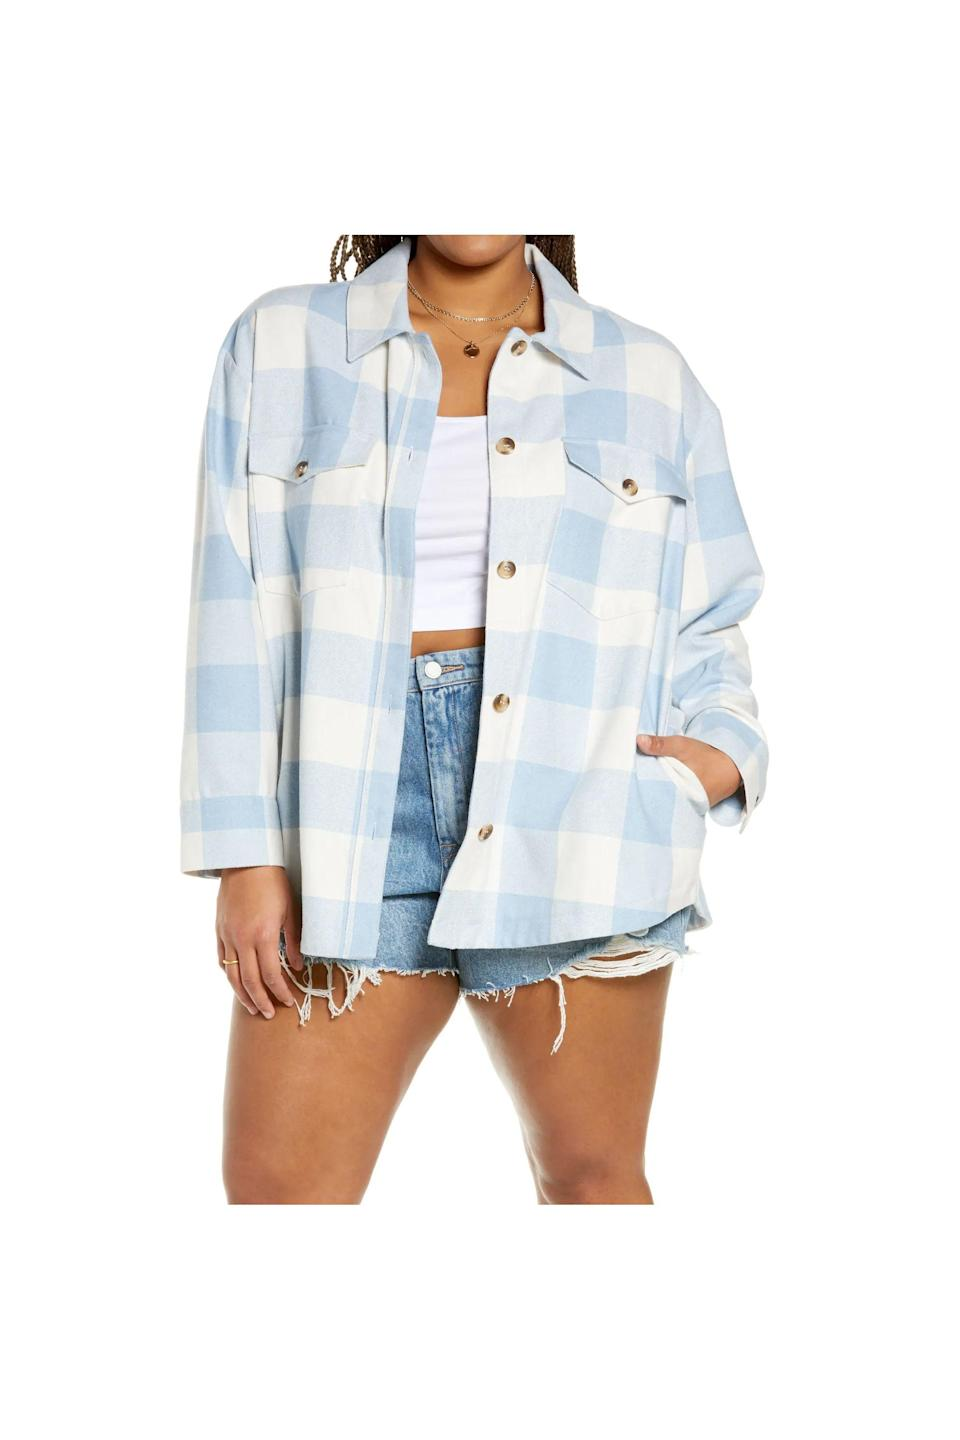 """<p><strong>BP.</strong></p><p>nordstrom.com</p><p><strong>$49.00</strong></p><p><a href=""""https://go.redirectingat.com?id=74968X1596630&url=https%3A%2F%2Fwww.nordstrom.com%2Fs%2Fbp-womens-plaid-shirt-jacket-plus-size%2F5702060&sref=https%3A%2F%2Fwww.cosmopolitan.com%2Fstyle-beauty%2Ffashion%2Fg36232237%2Fbest-shackets%2F"""" rel=""""nofollow noopener"""" target=""""_blank"""" data-ylk=""""slk:Shop Now"""" class=""""link rapid-noclick-resp"""">Shop Now</a></p><p>Imagine all the IG-worthy picnics you would have in this.</p>"""